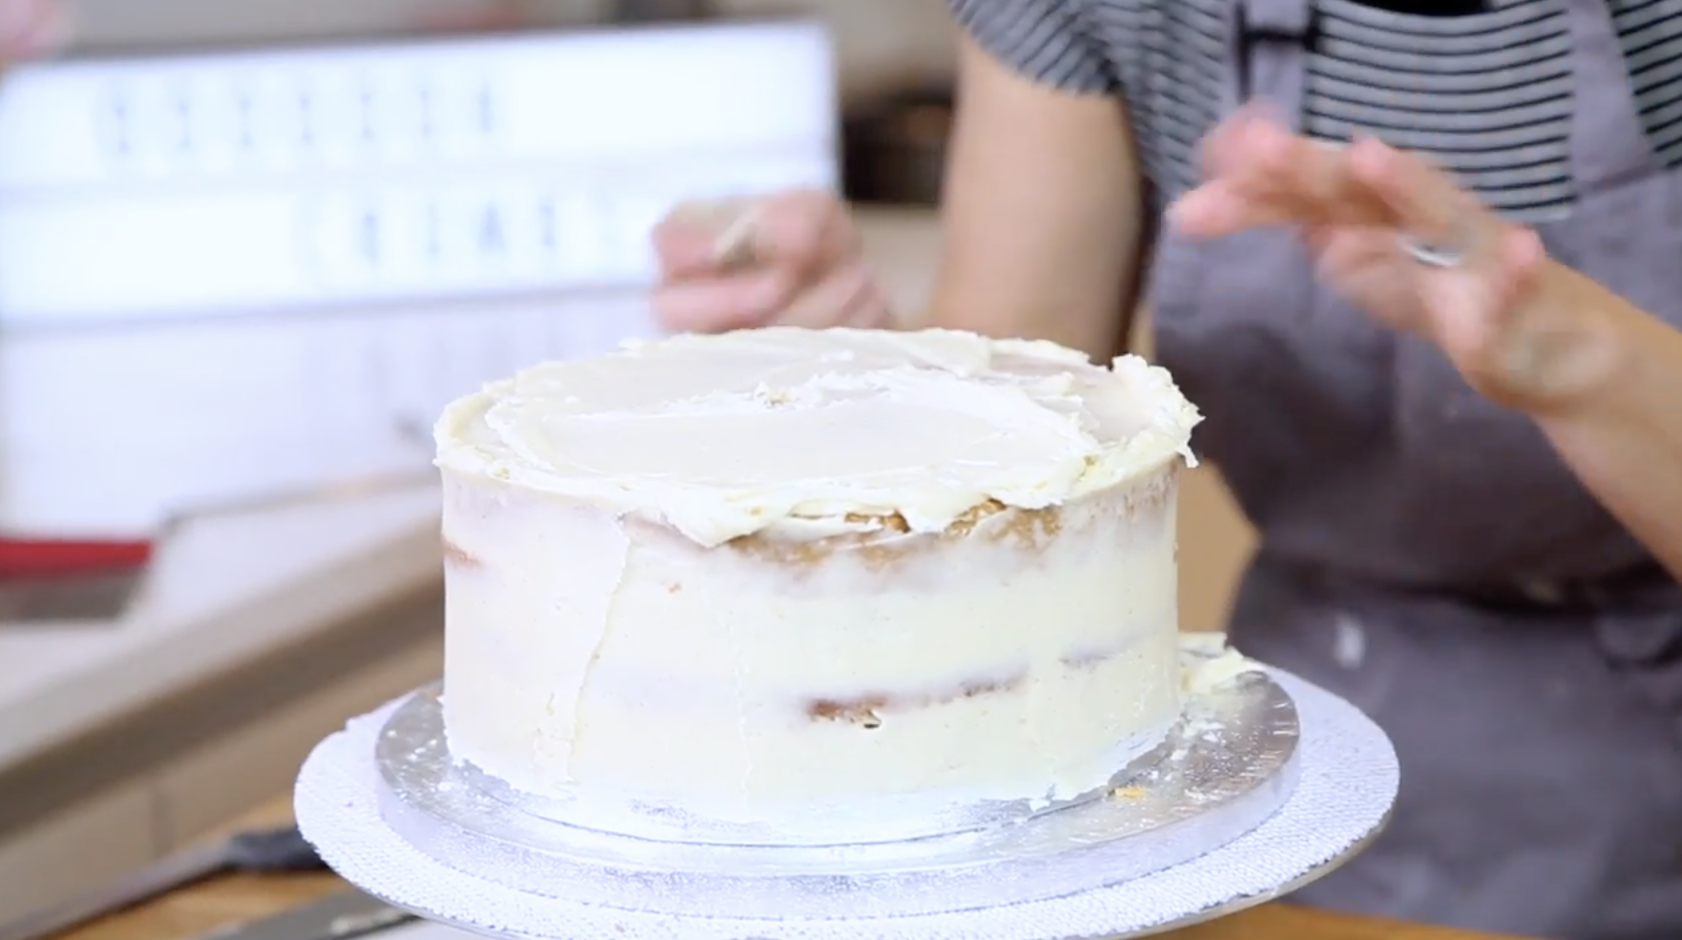 A thin layer of icing on a cake that's called a crumb coat